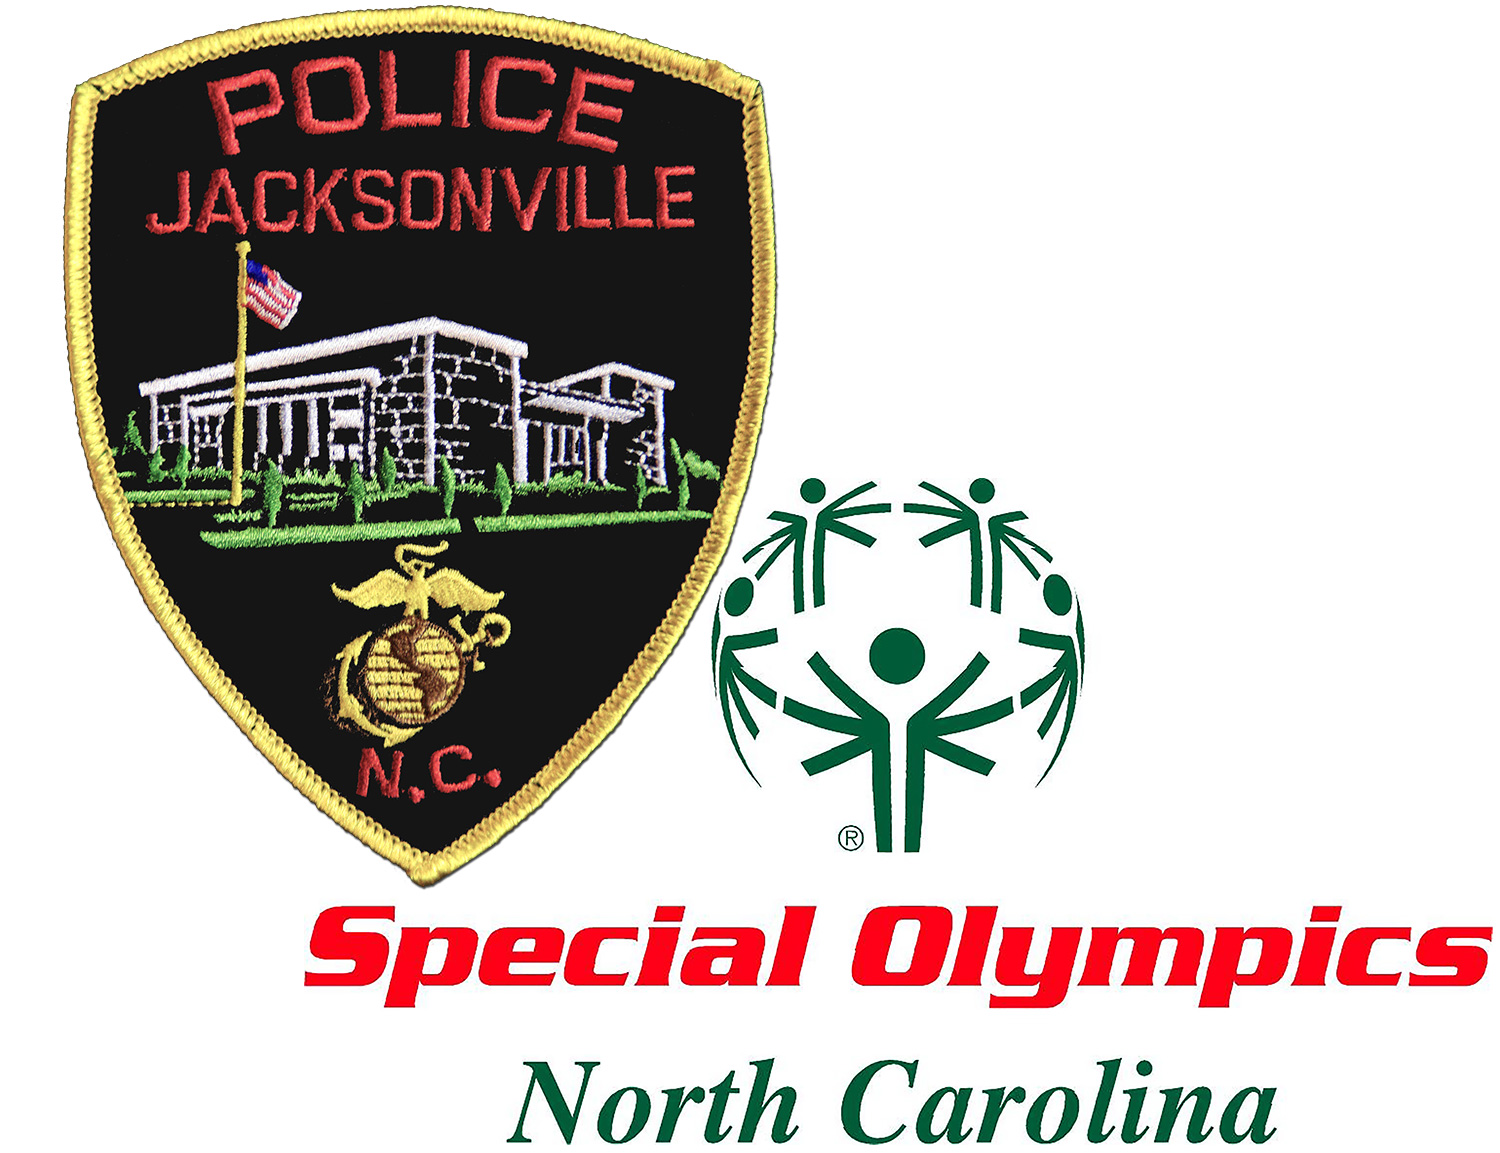 JPD Patch and NC Special Olympics logo